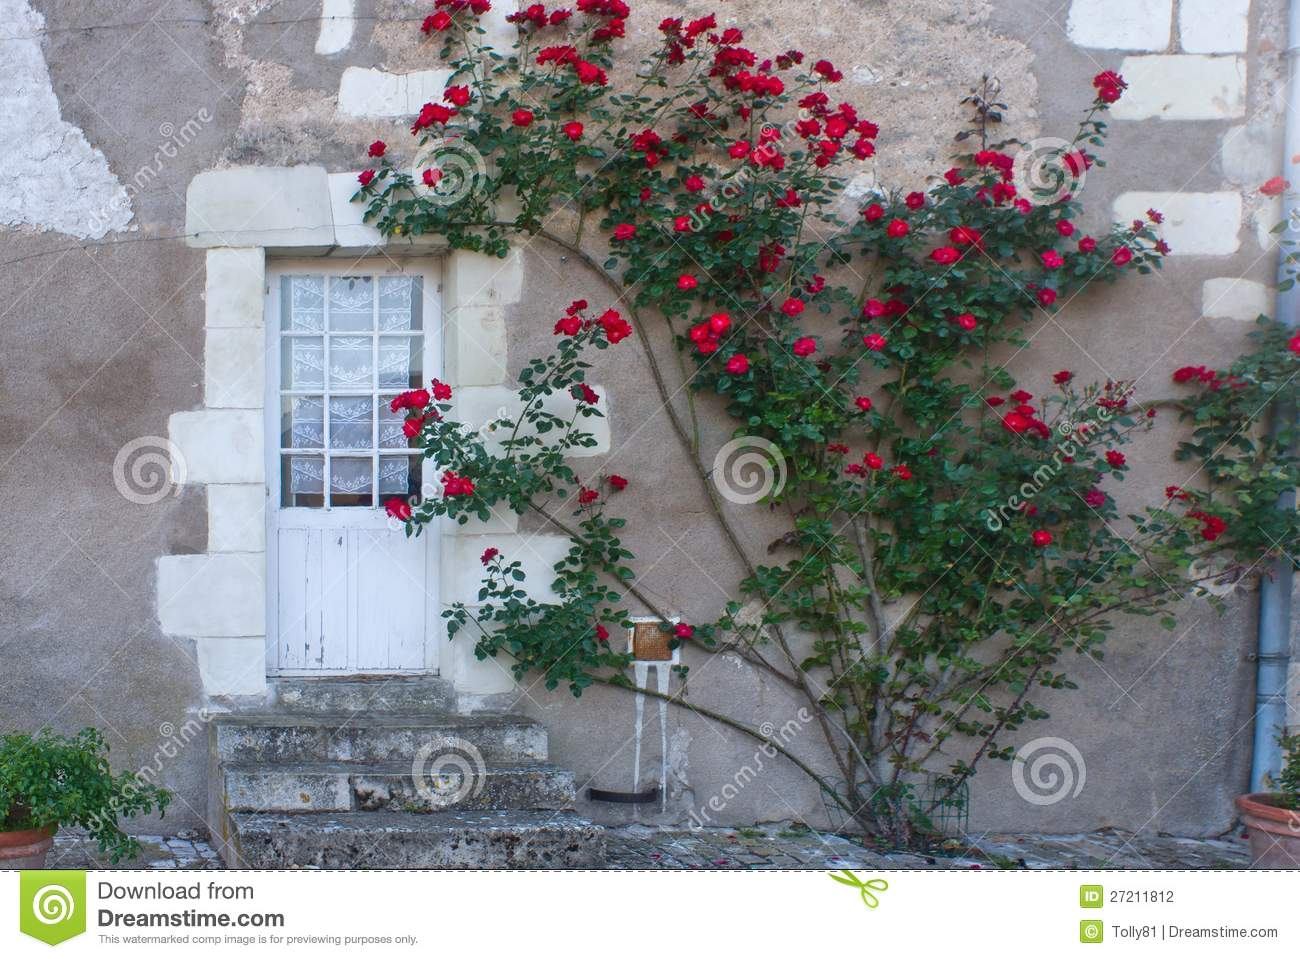 Climbing Rose Bush In France Stock Photo Image Of